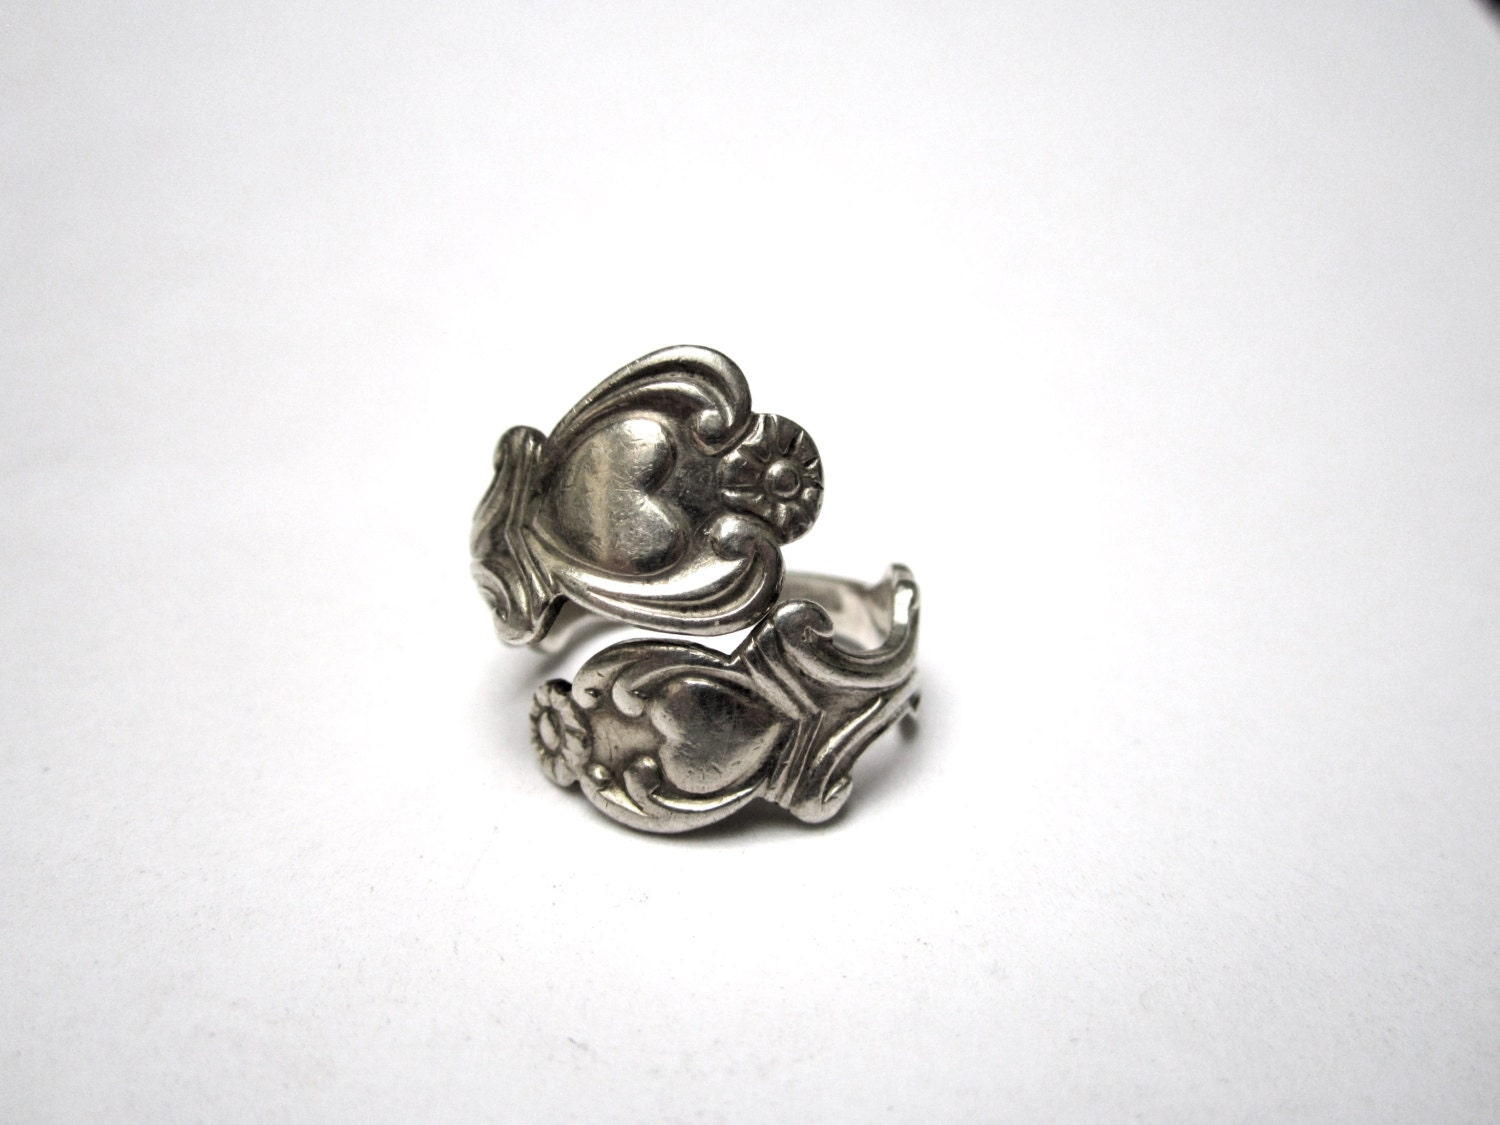 Vintage Sterling Silver Avon Spoon Ring Size 7